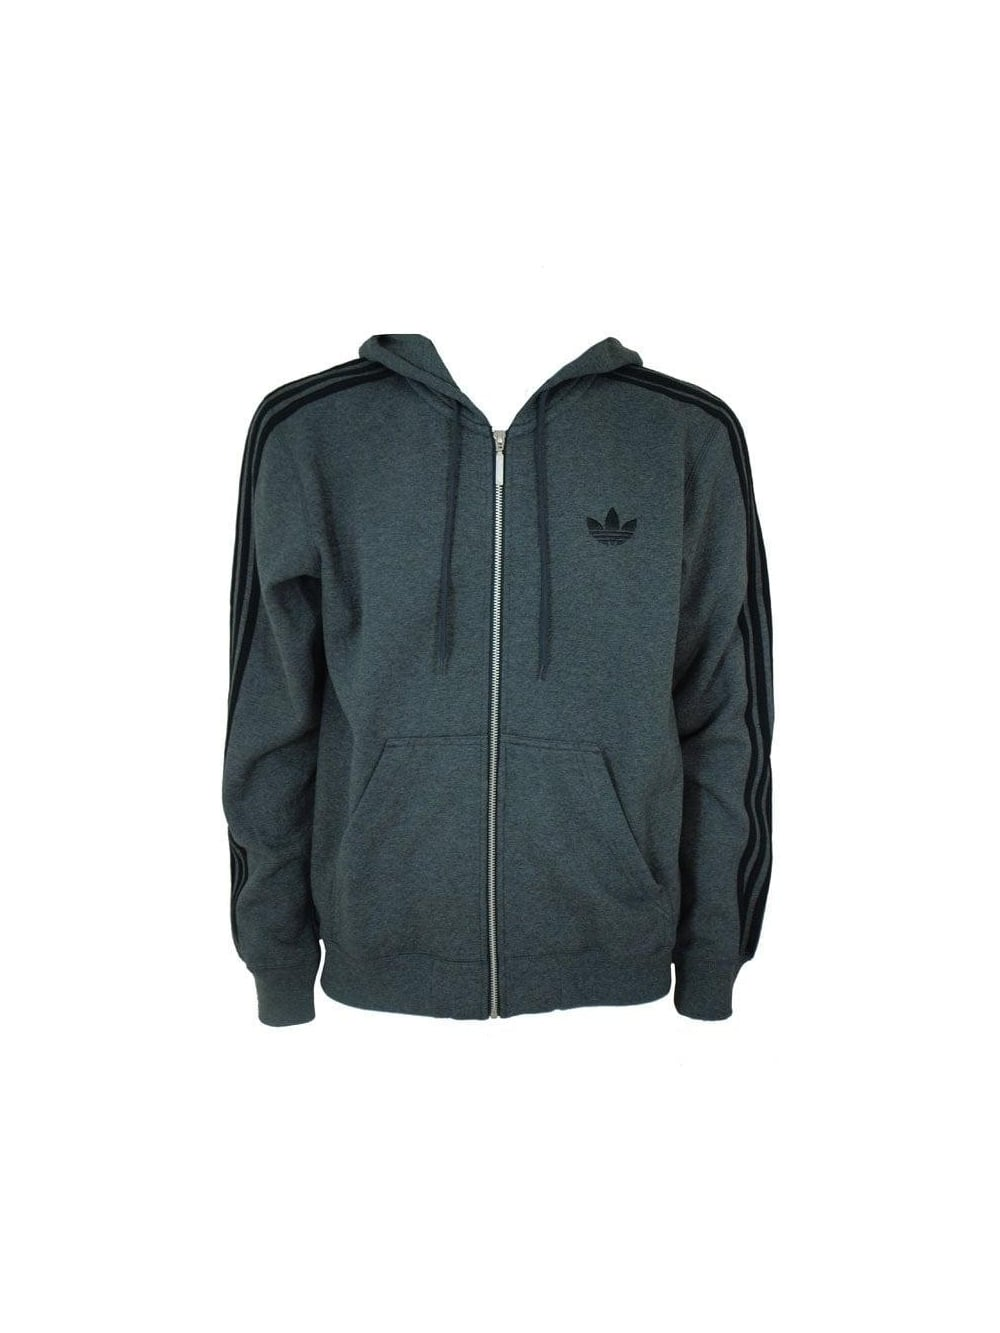 Adidas Spo Hooded Flock Jacket in Dark Grey - Northern Threads